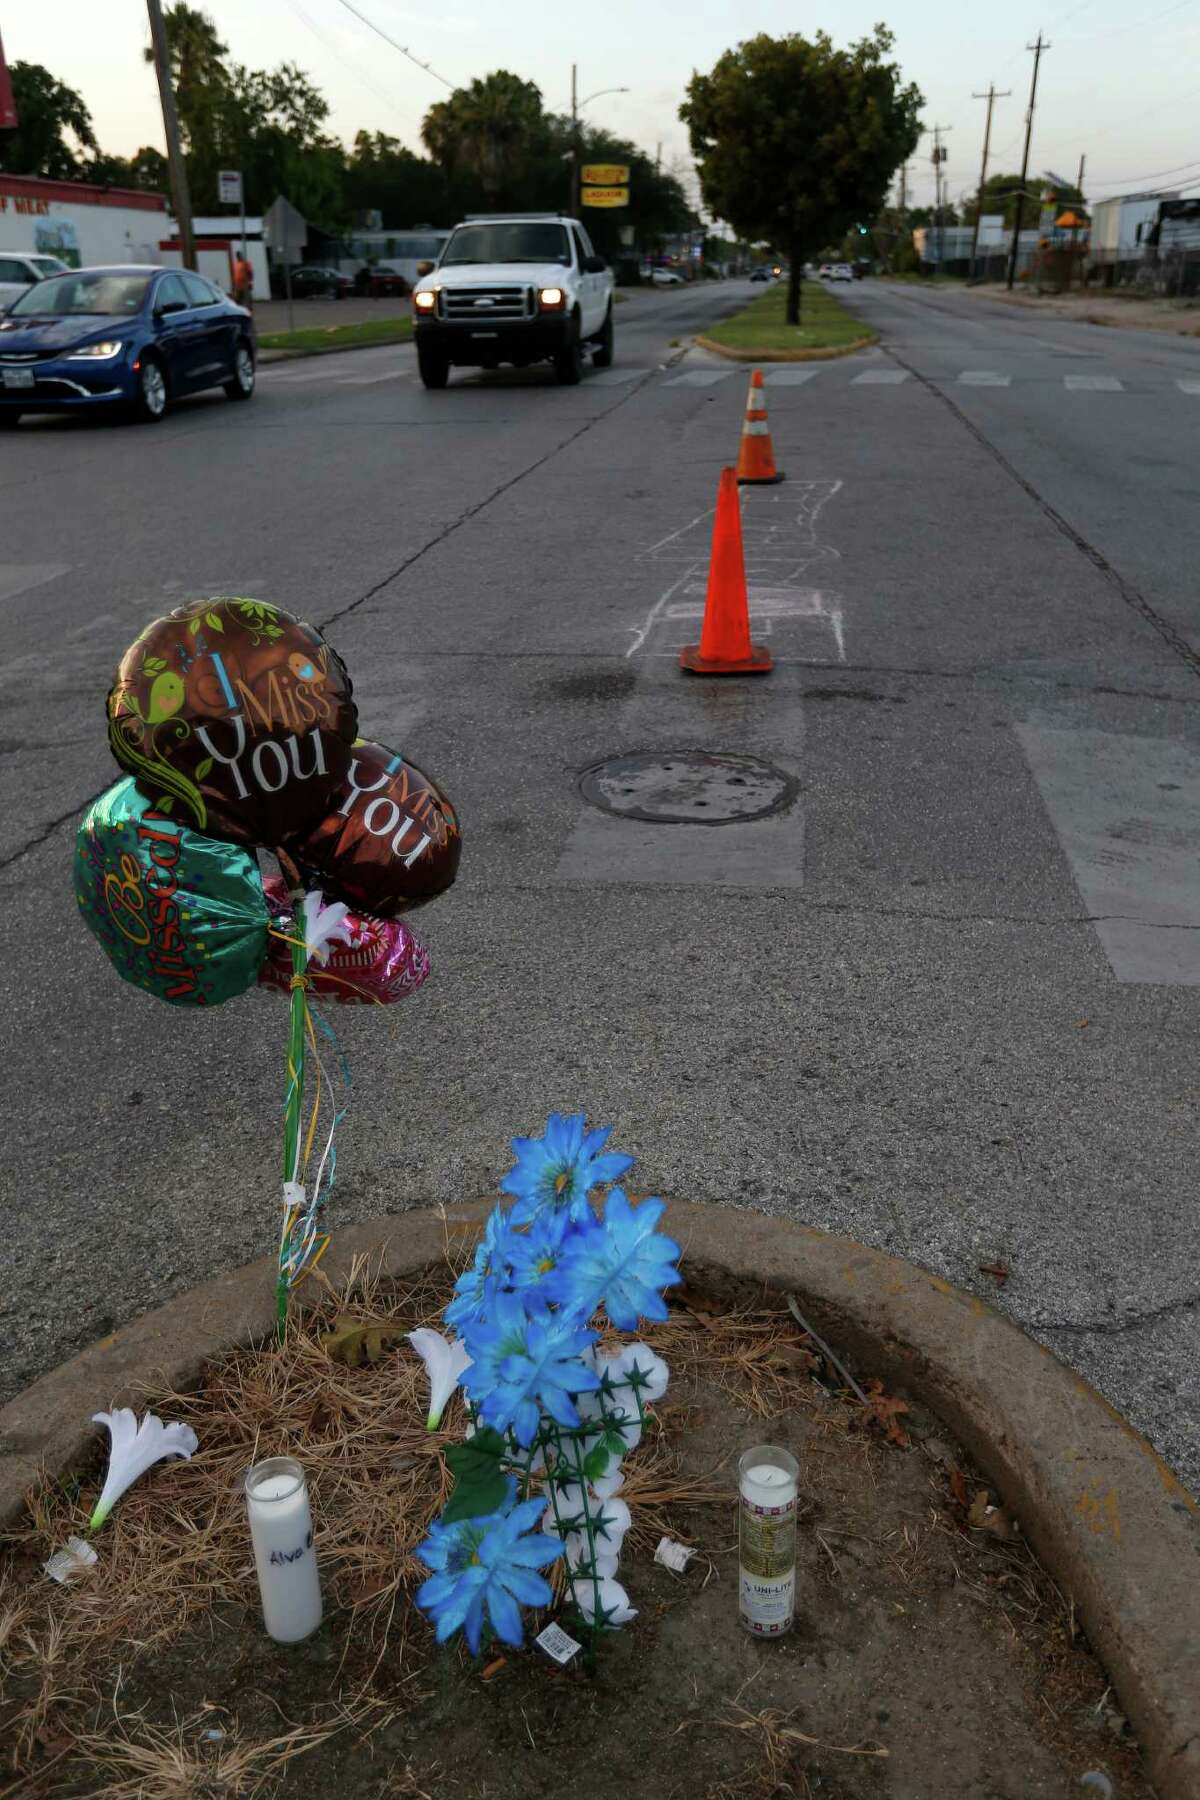 A small memorial for Alva Braziel, who was shot and killed near his home on Houston's south side, greets passers-by at the corner of Cullen and Ward Streets.